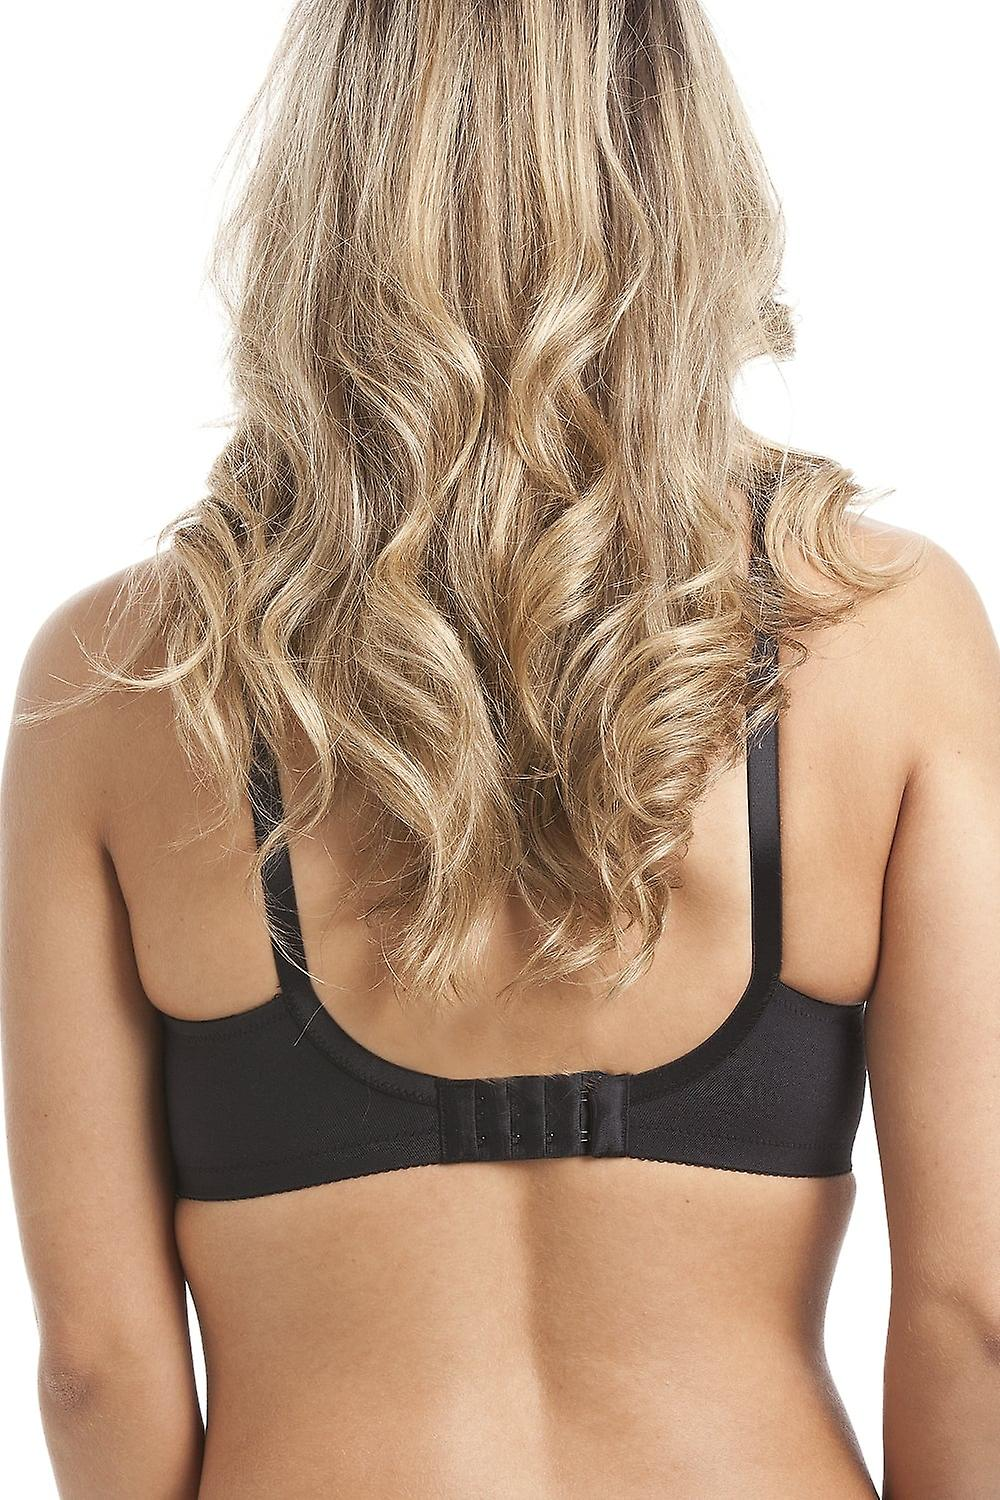 Royce Lingerie Black Full Cup Non Wired T-Shirt Bra